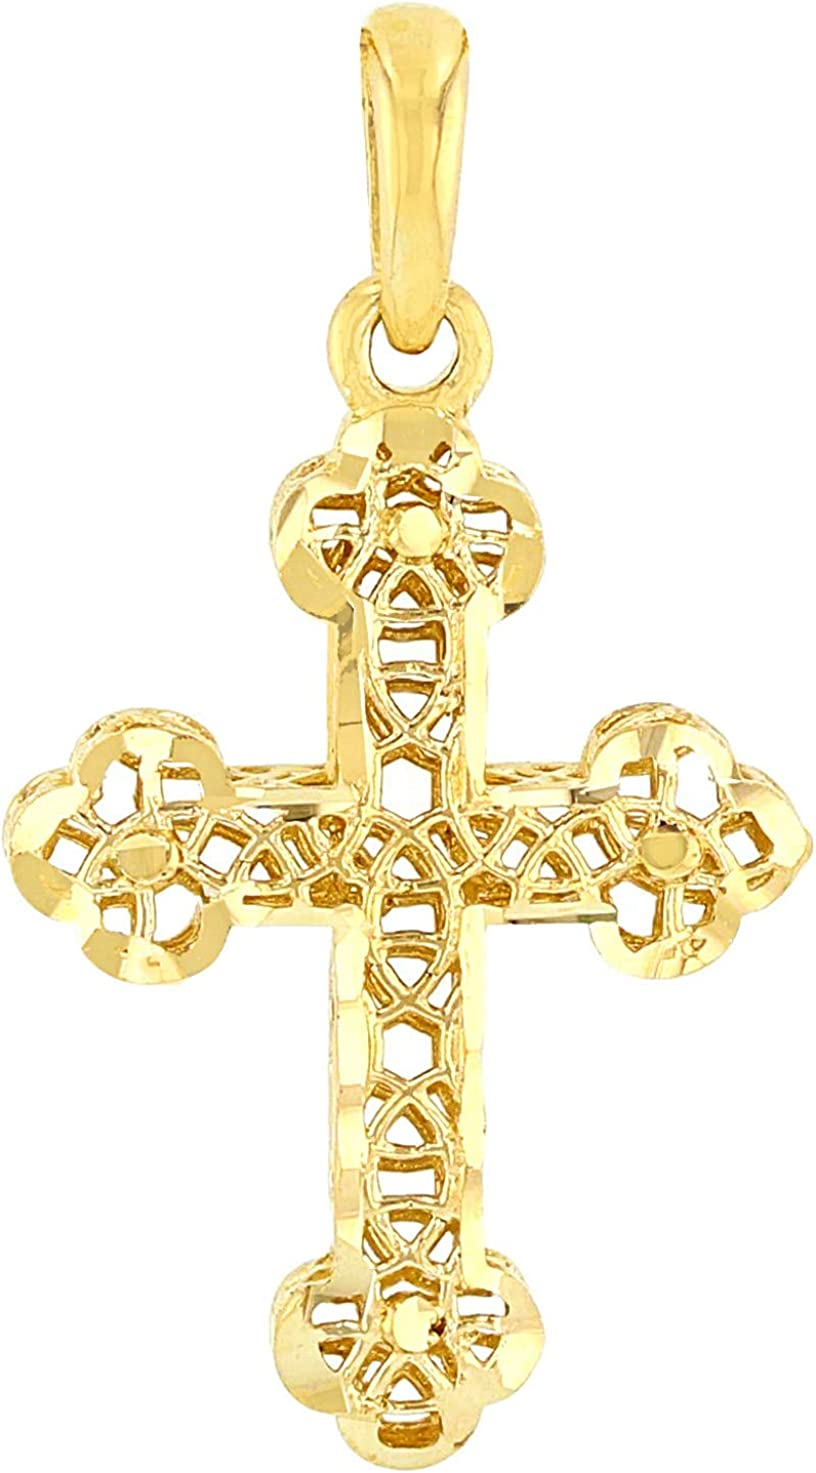 14K White Gold Filigree Eastern Orthodox Cross Charm Pendant Necklace